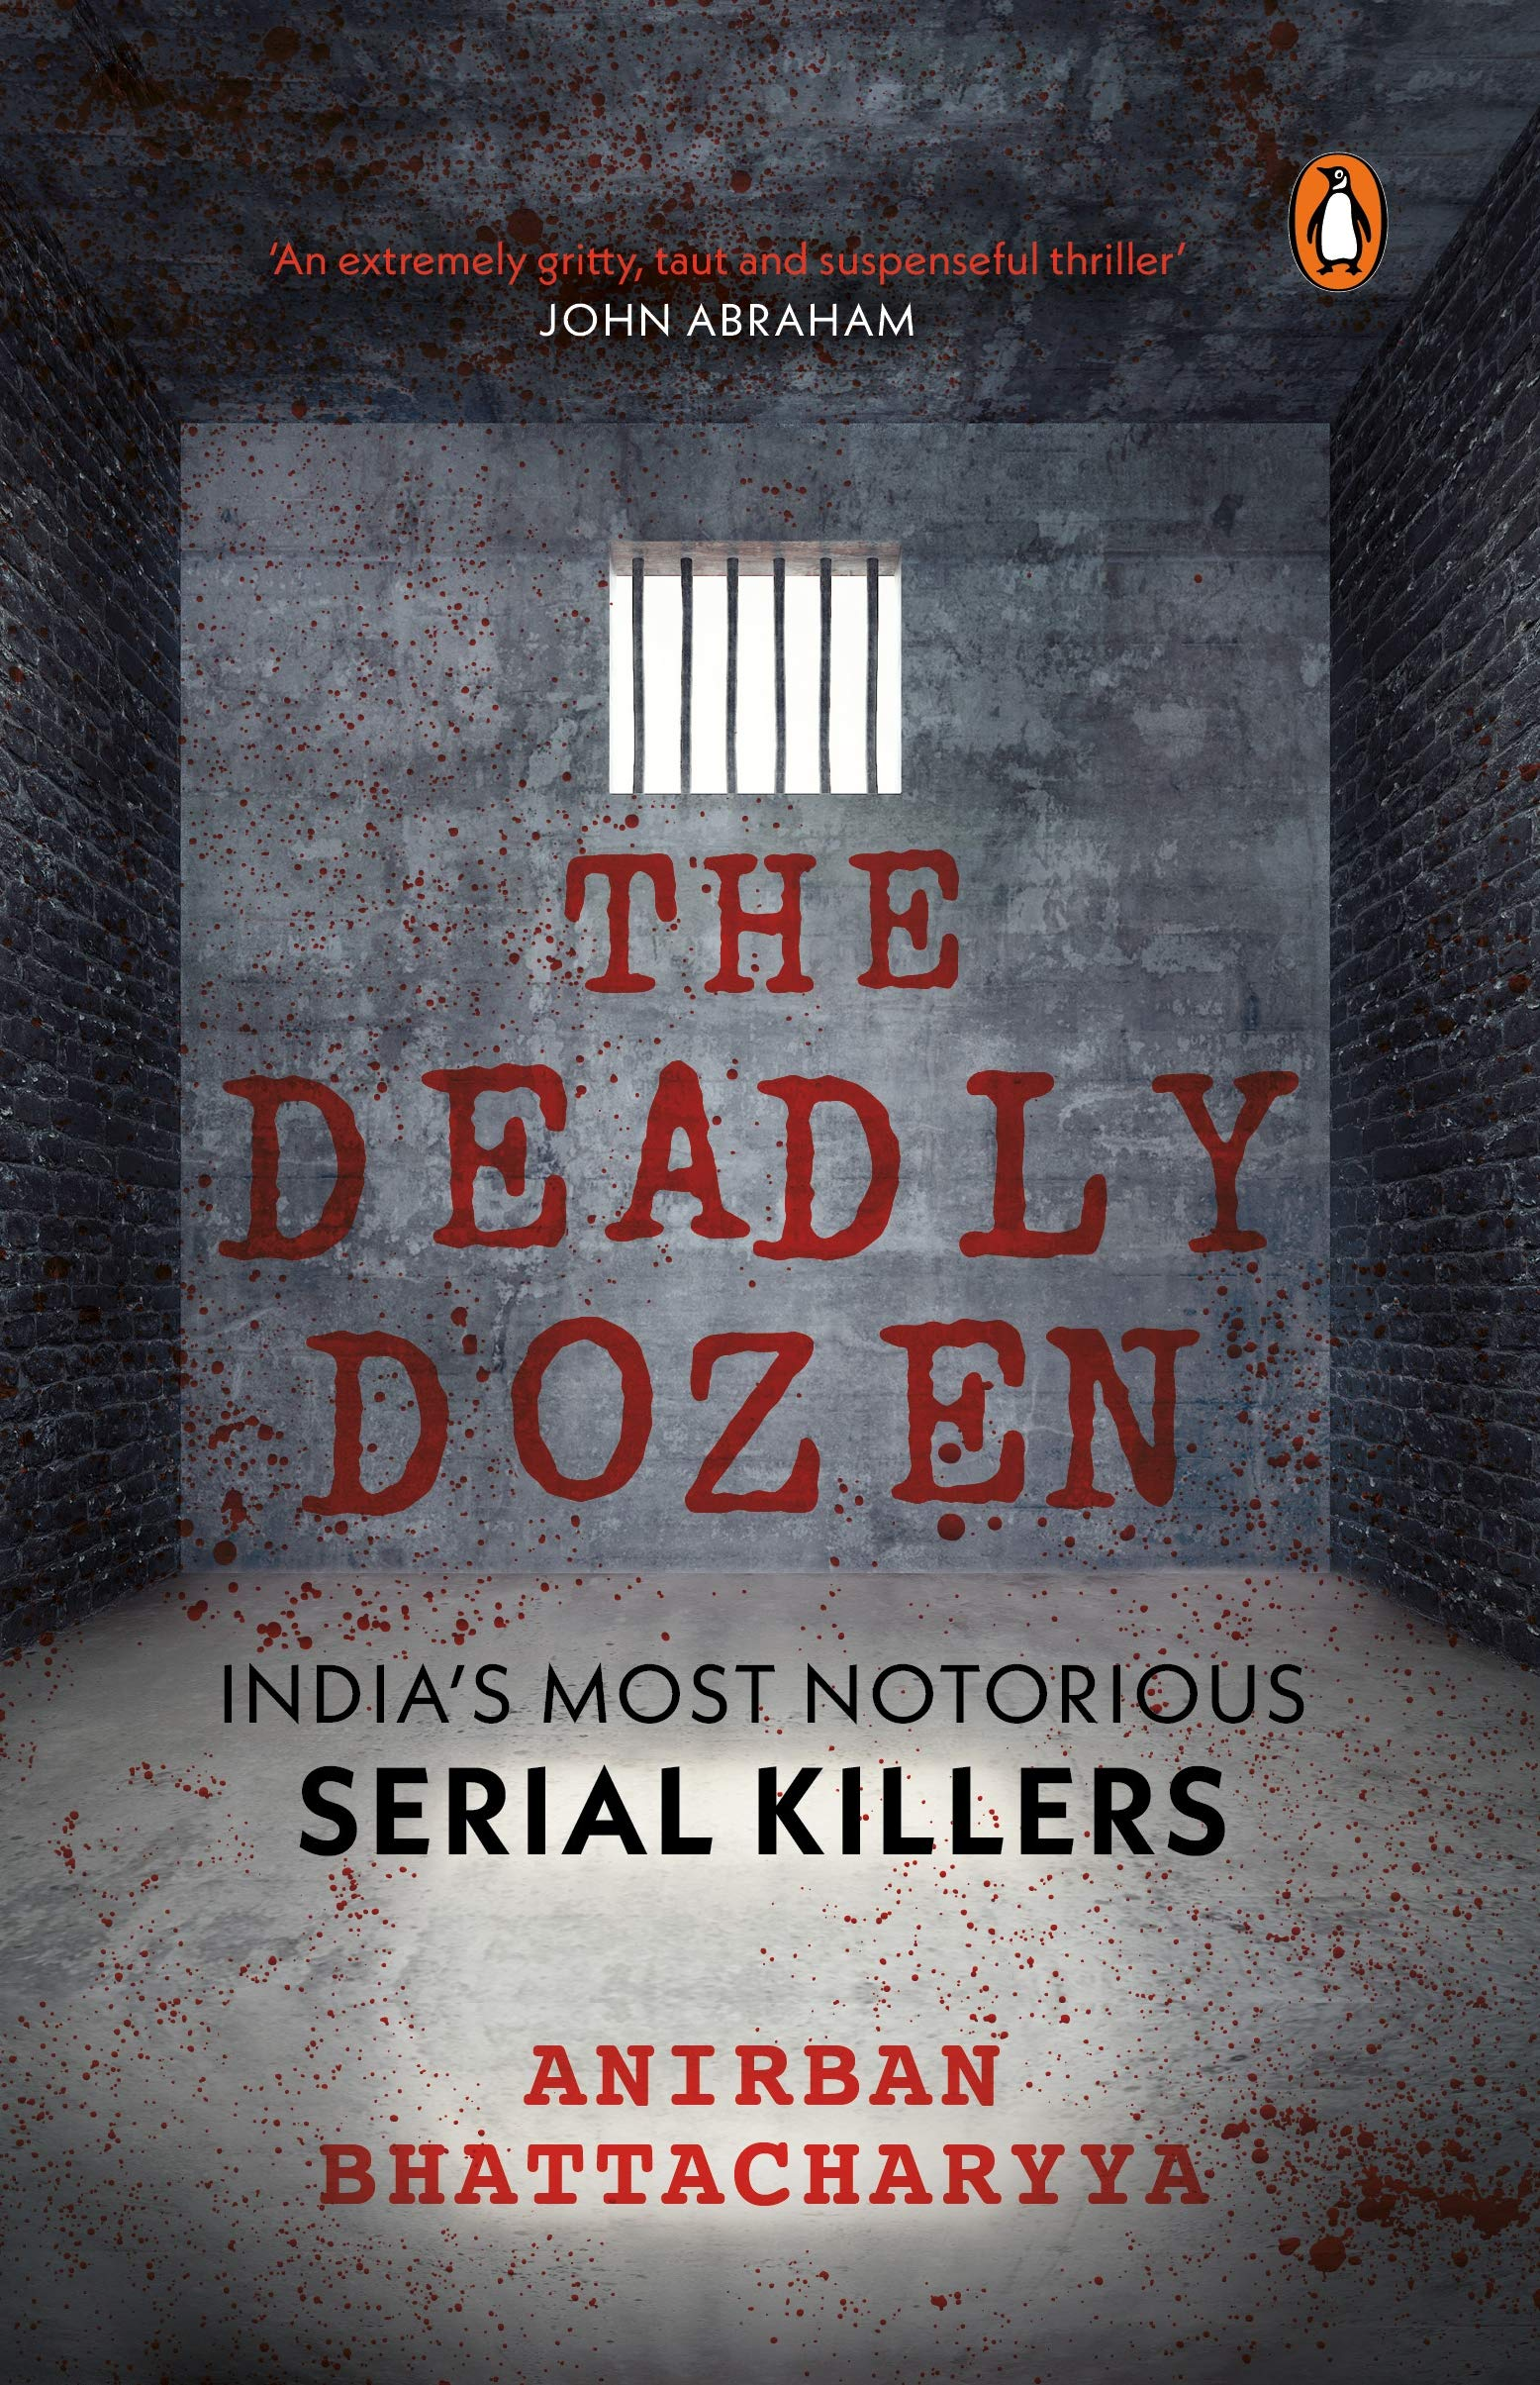 Review of 'The Deadly Dozen' by Anirban Bhattacharyya – Wonder's